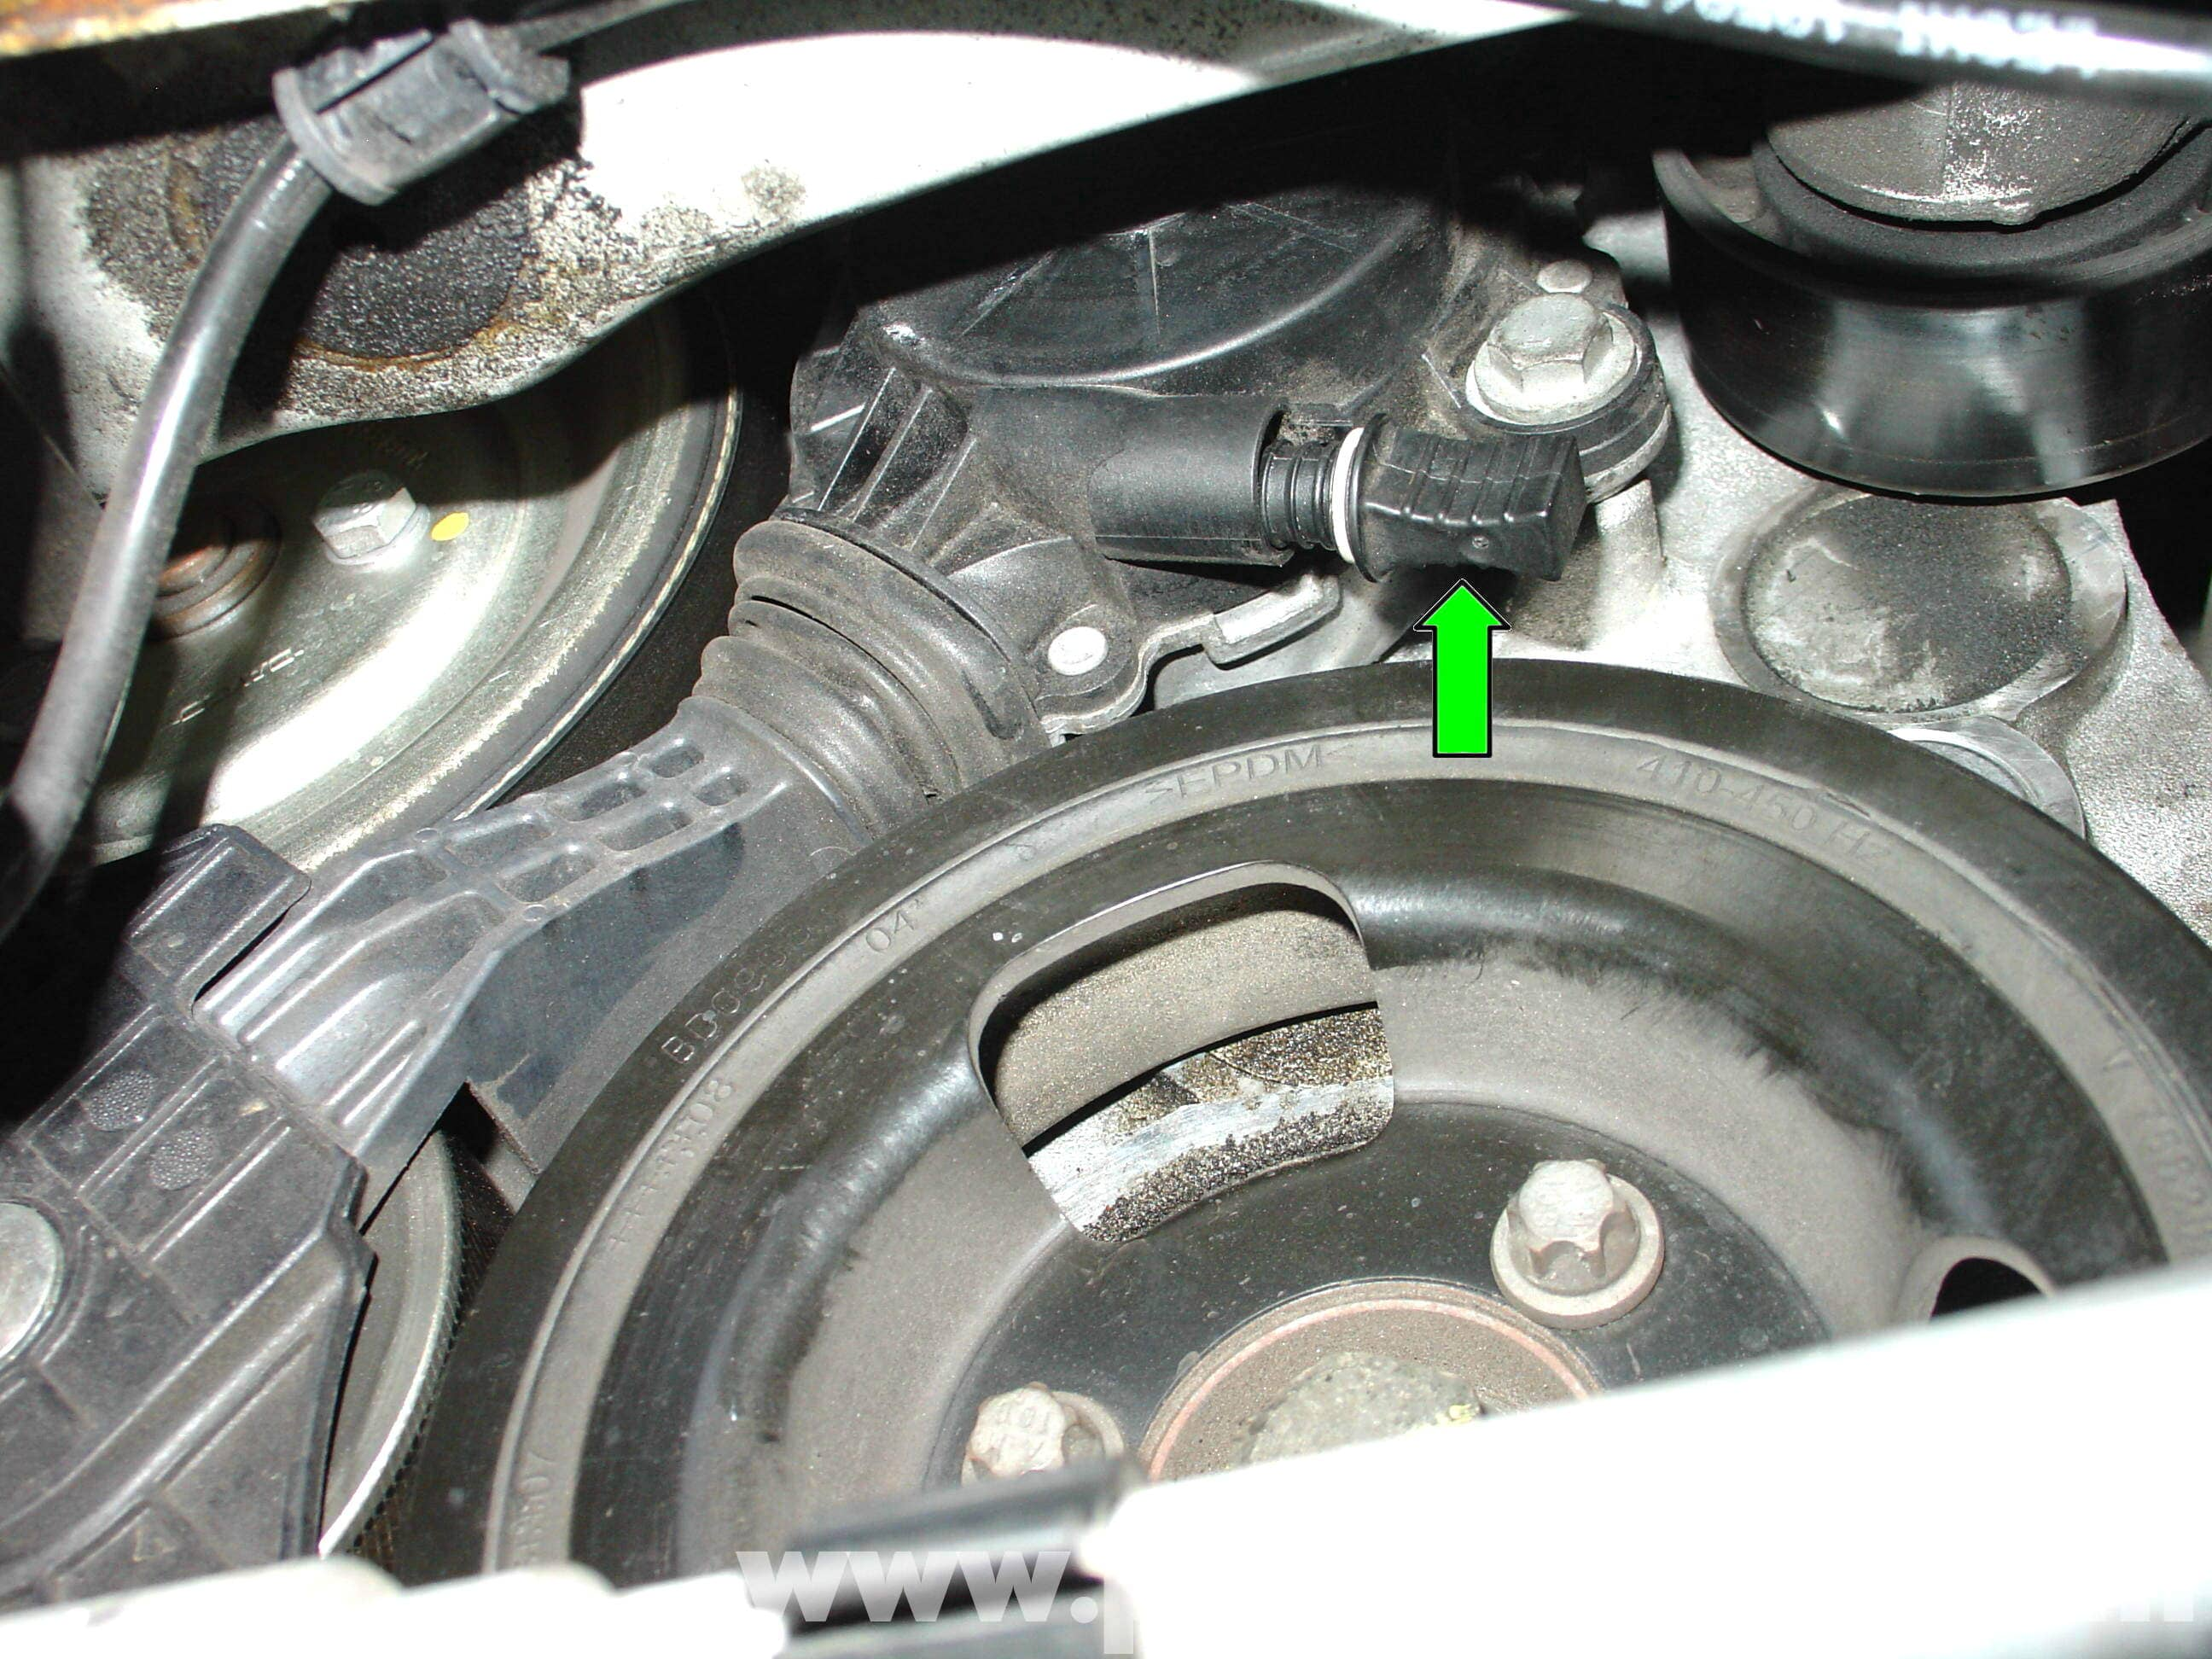 WATER Coolant Pump Replacement likewise I 24485773 Smog Pump Eliminator Kit Incl Alum Brackets Idler Pulley W Bearing Pulley Mounting Bolt Washer Chrome 1700a additionally Emergency Alternator Belt in addition  additionally 338054 Can I Bypass The A C  pressor With A Shorter Belt. on how to tell when you need a new serpentine belt